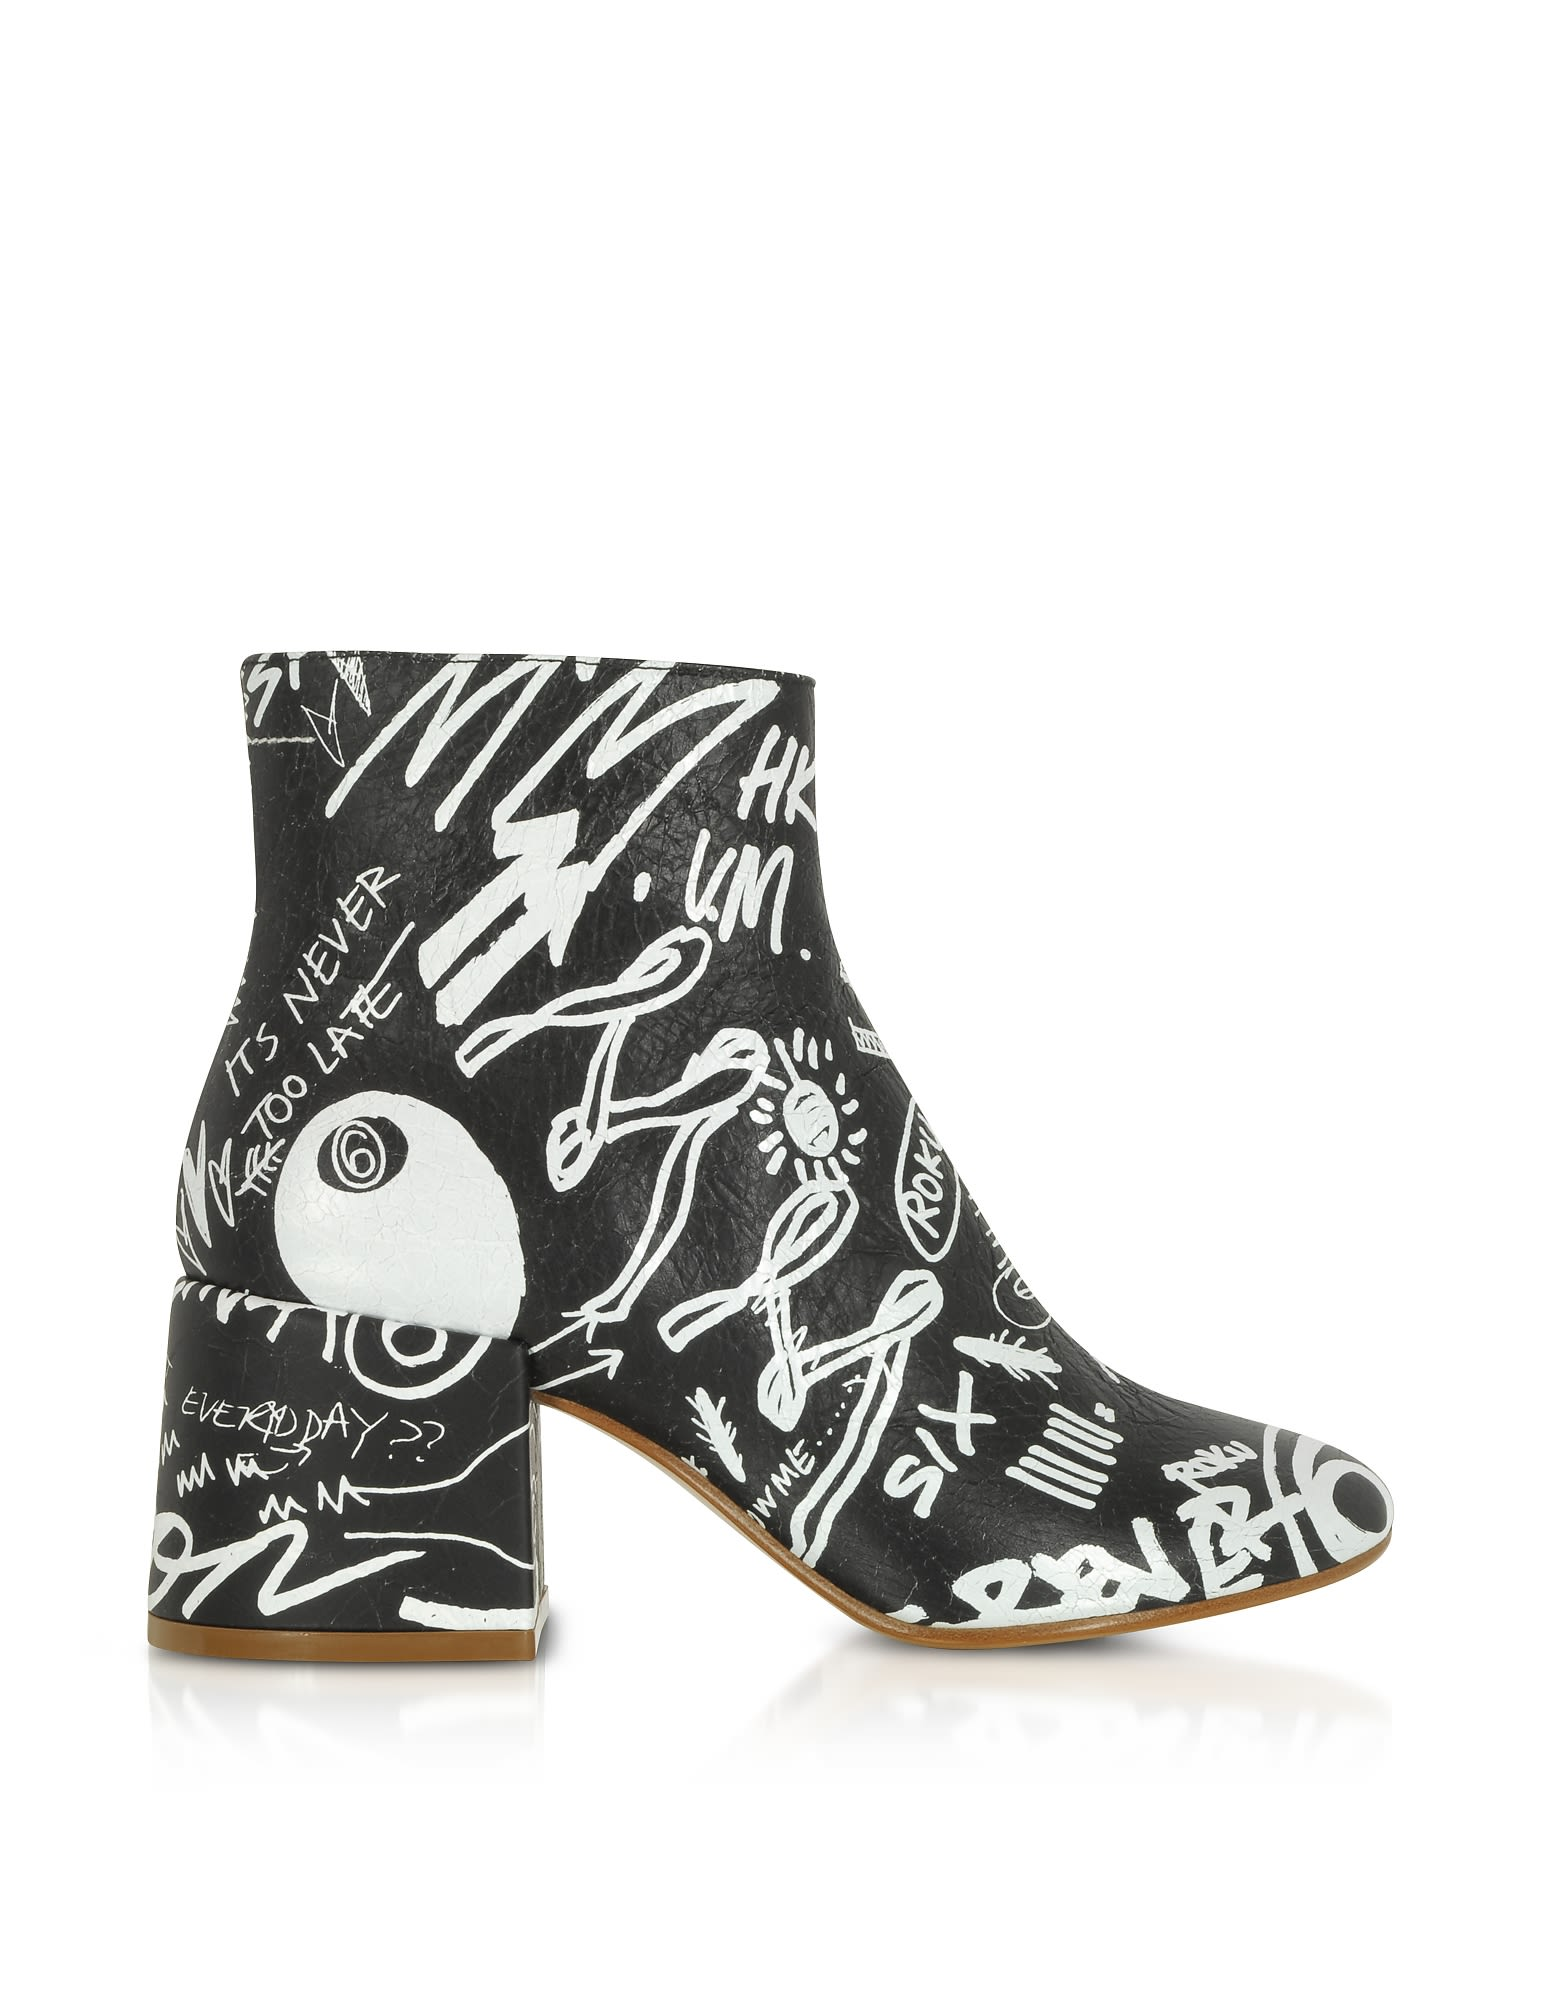 756b2893ba3c MM6 Maison Margiela Mm6 Maison Martin Margiela Black Crackled Graffiti  Printed Leather Heel Boots - Black ...